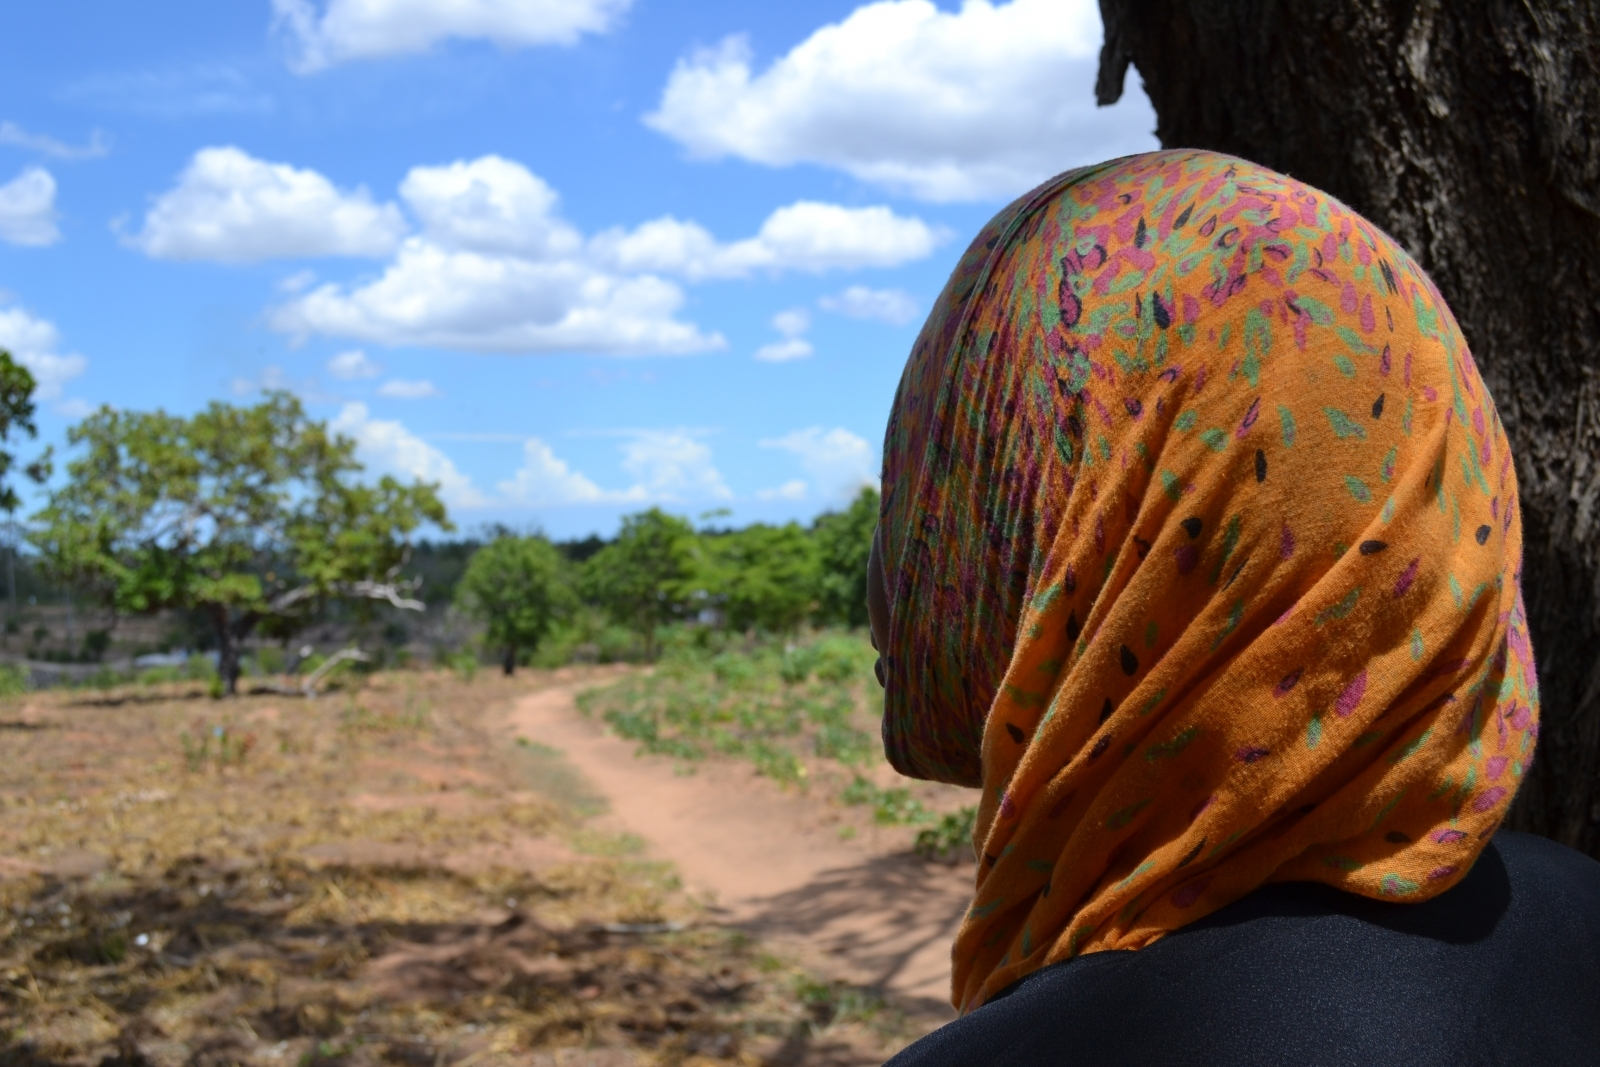 Tanzanian Maids in Oman, UAE Describe Beatings, Exploitation and Harassment